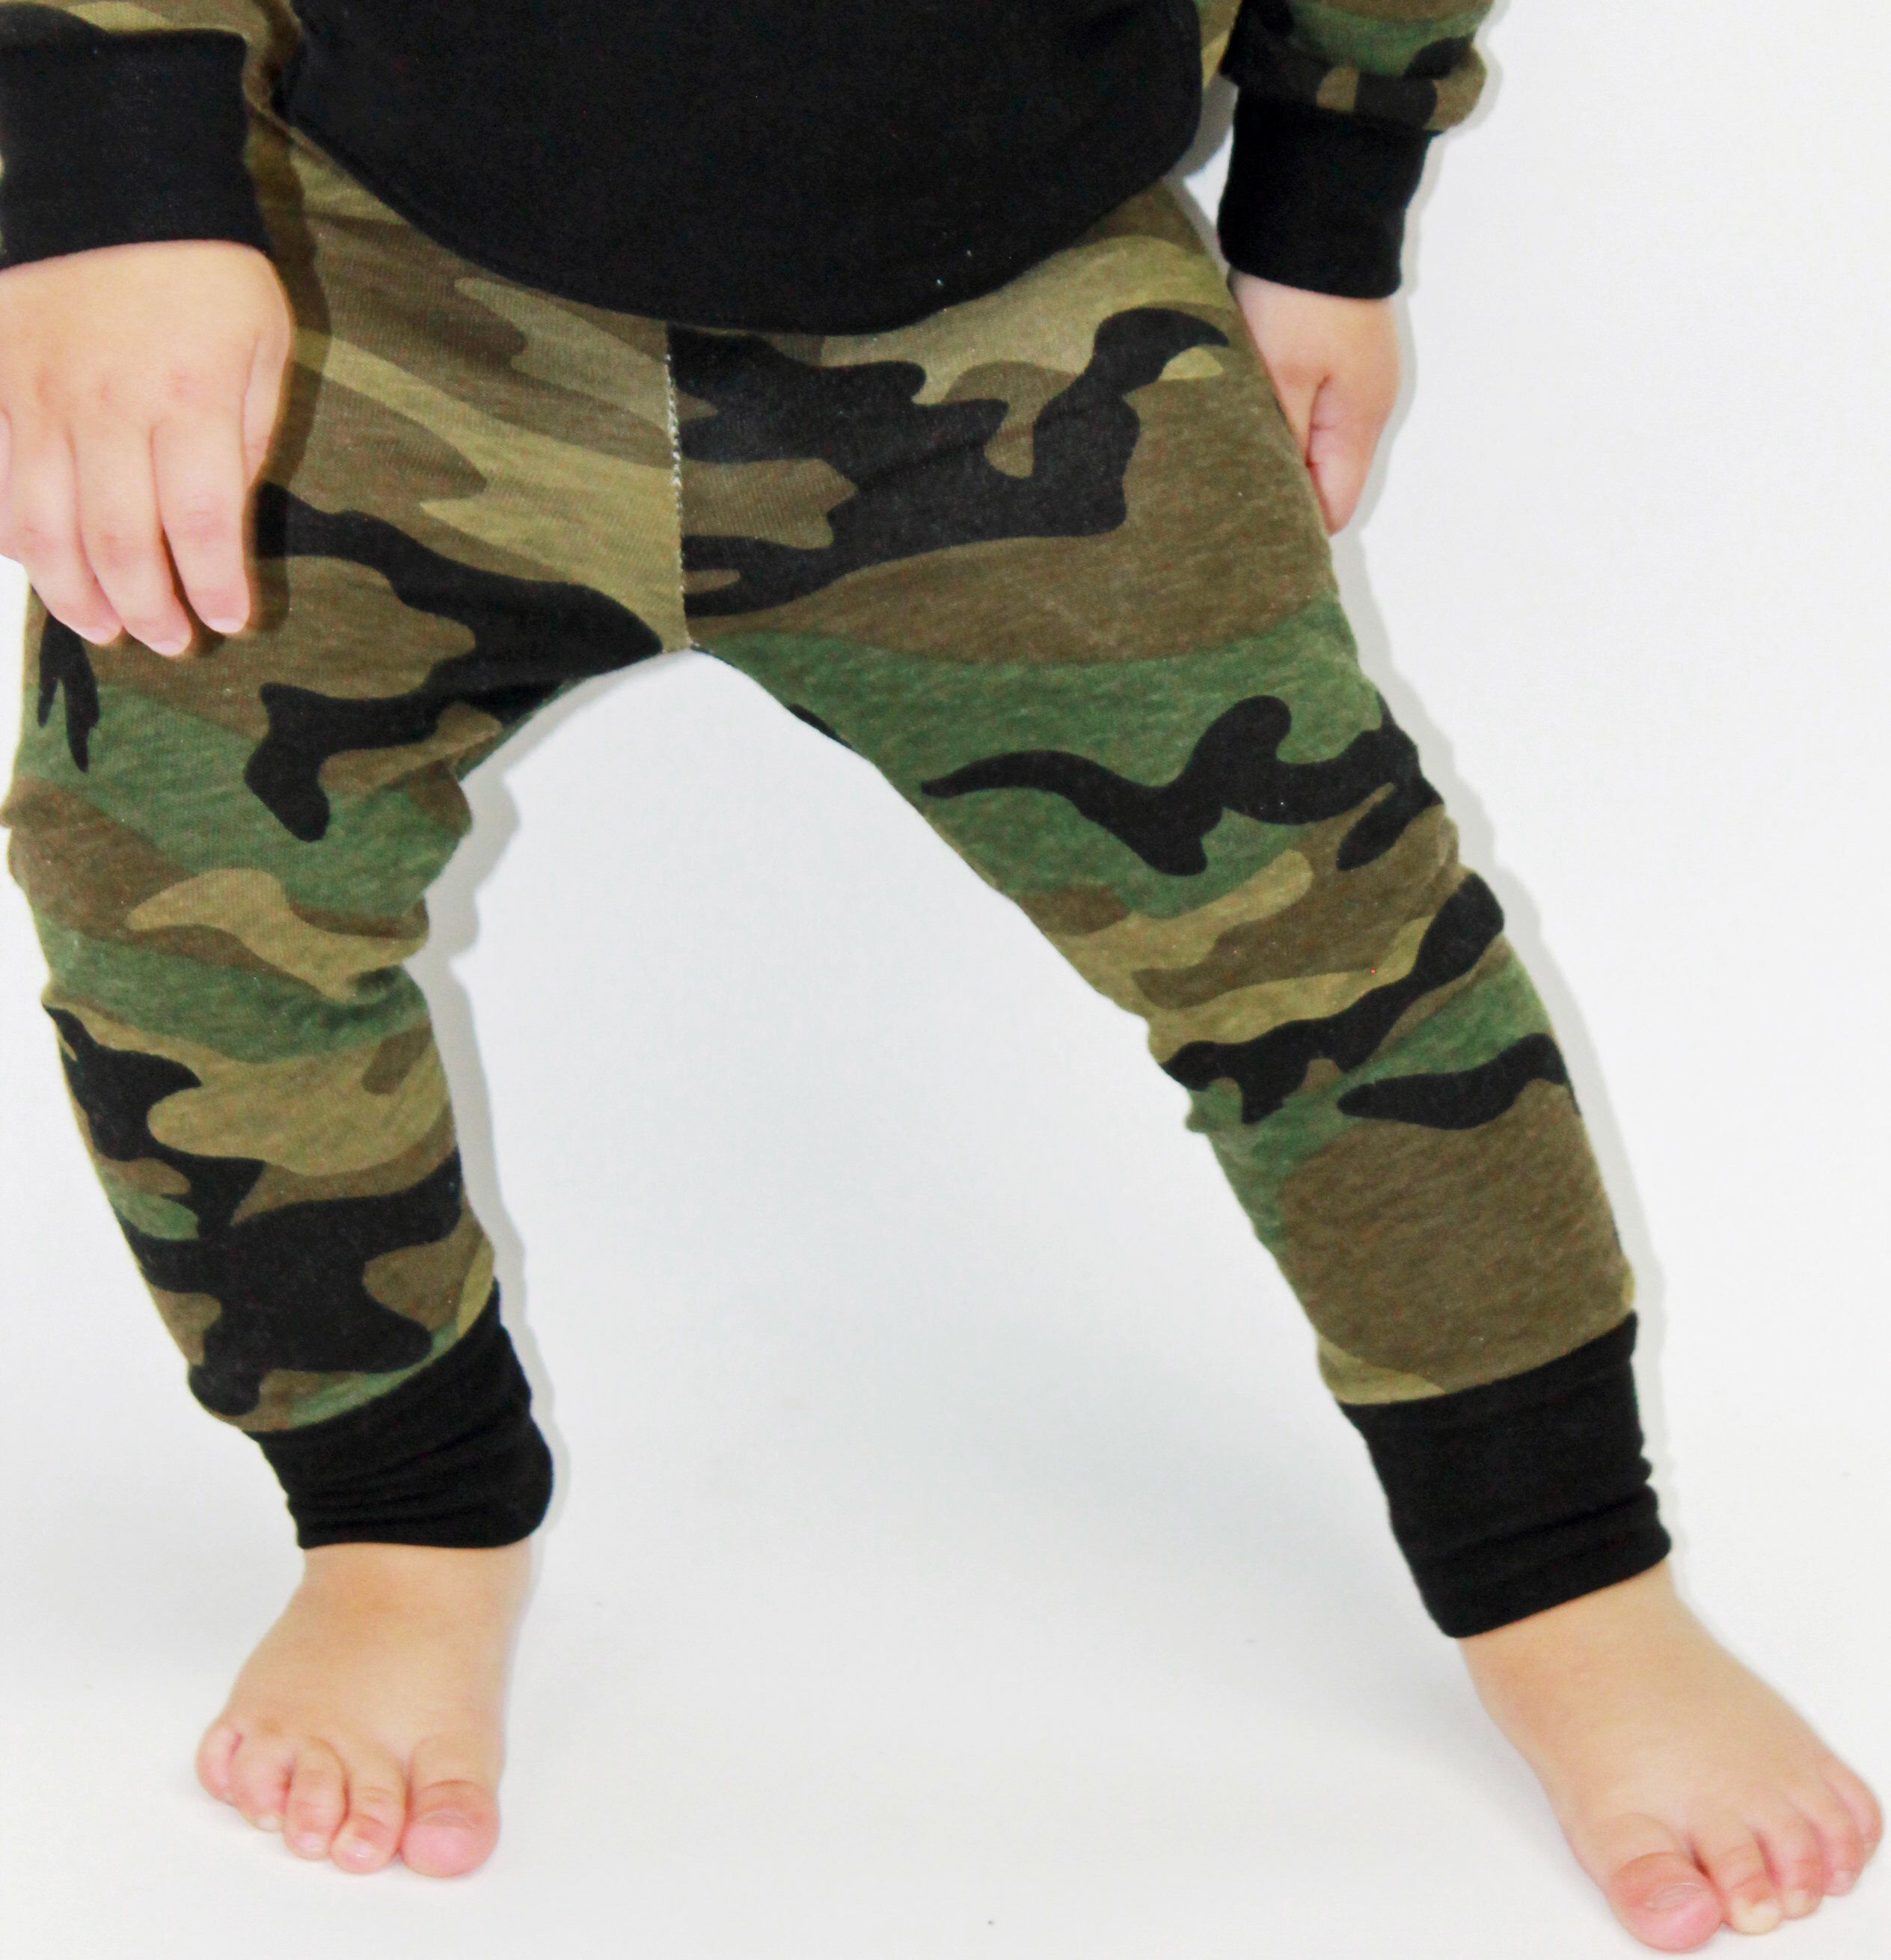 bfb4f85f9dc9d Excited to share this item from my #etsy shop: Camo Baby Pants - Slim Harem  Pants - Camo - Camo Toddler Leggings - Camouflage - Baby Boy or Girl